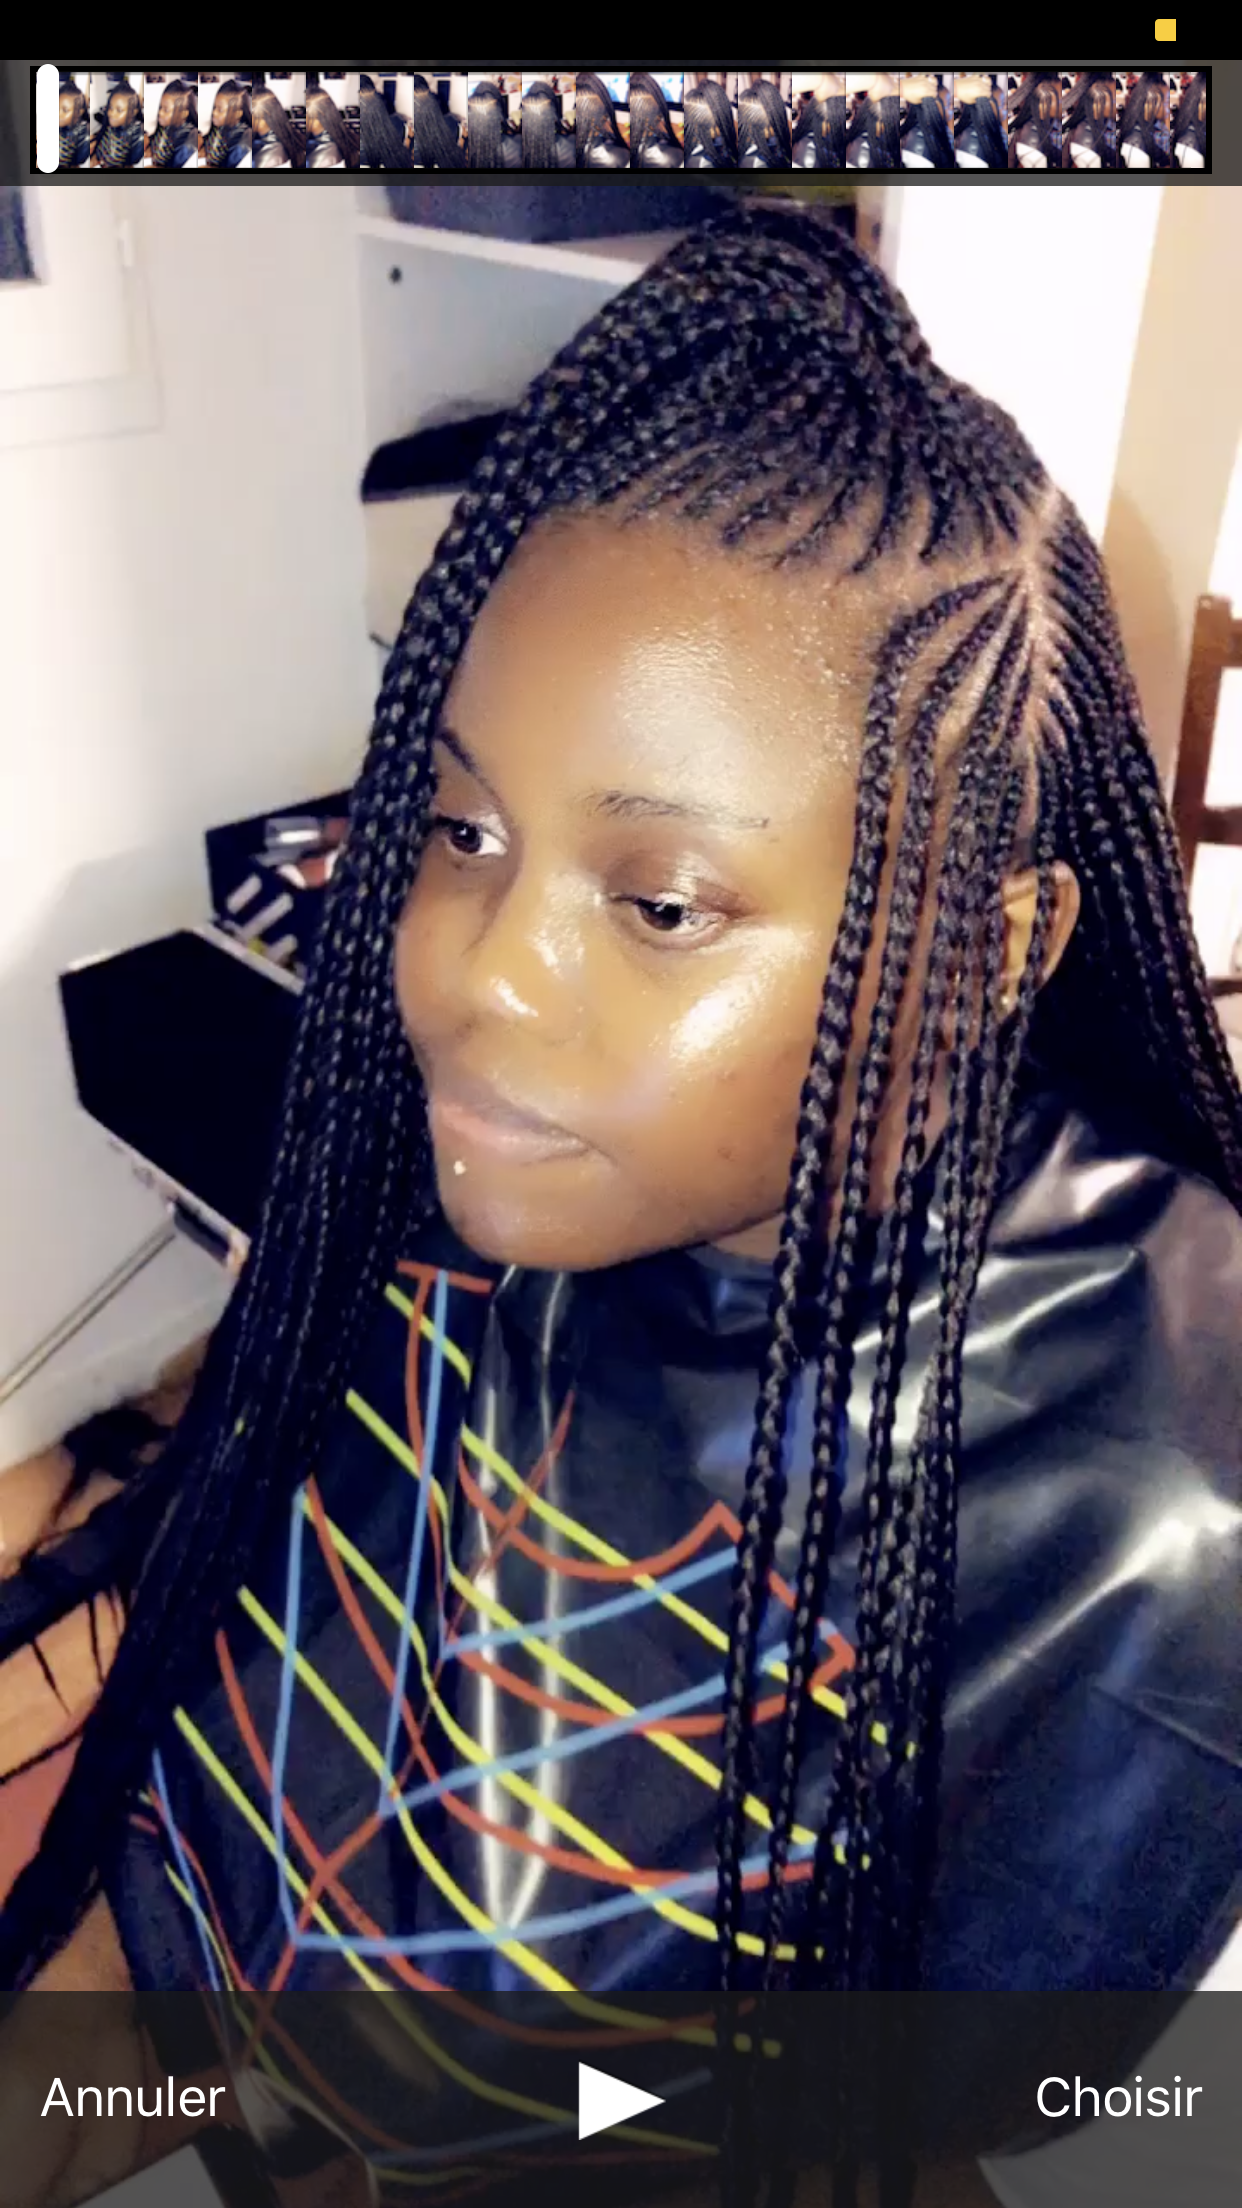 salon de coiffure afro tresse tresses box braids crochet braids vanilles tissages paris 75 77 78 91 92 93 94 95 SBJYOTGE